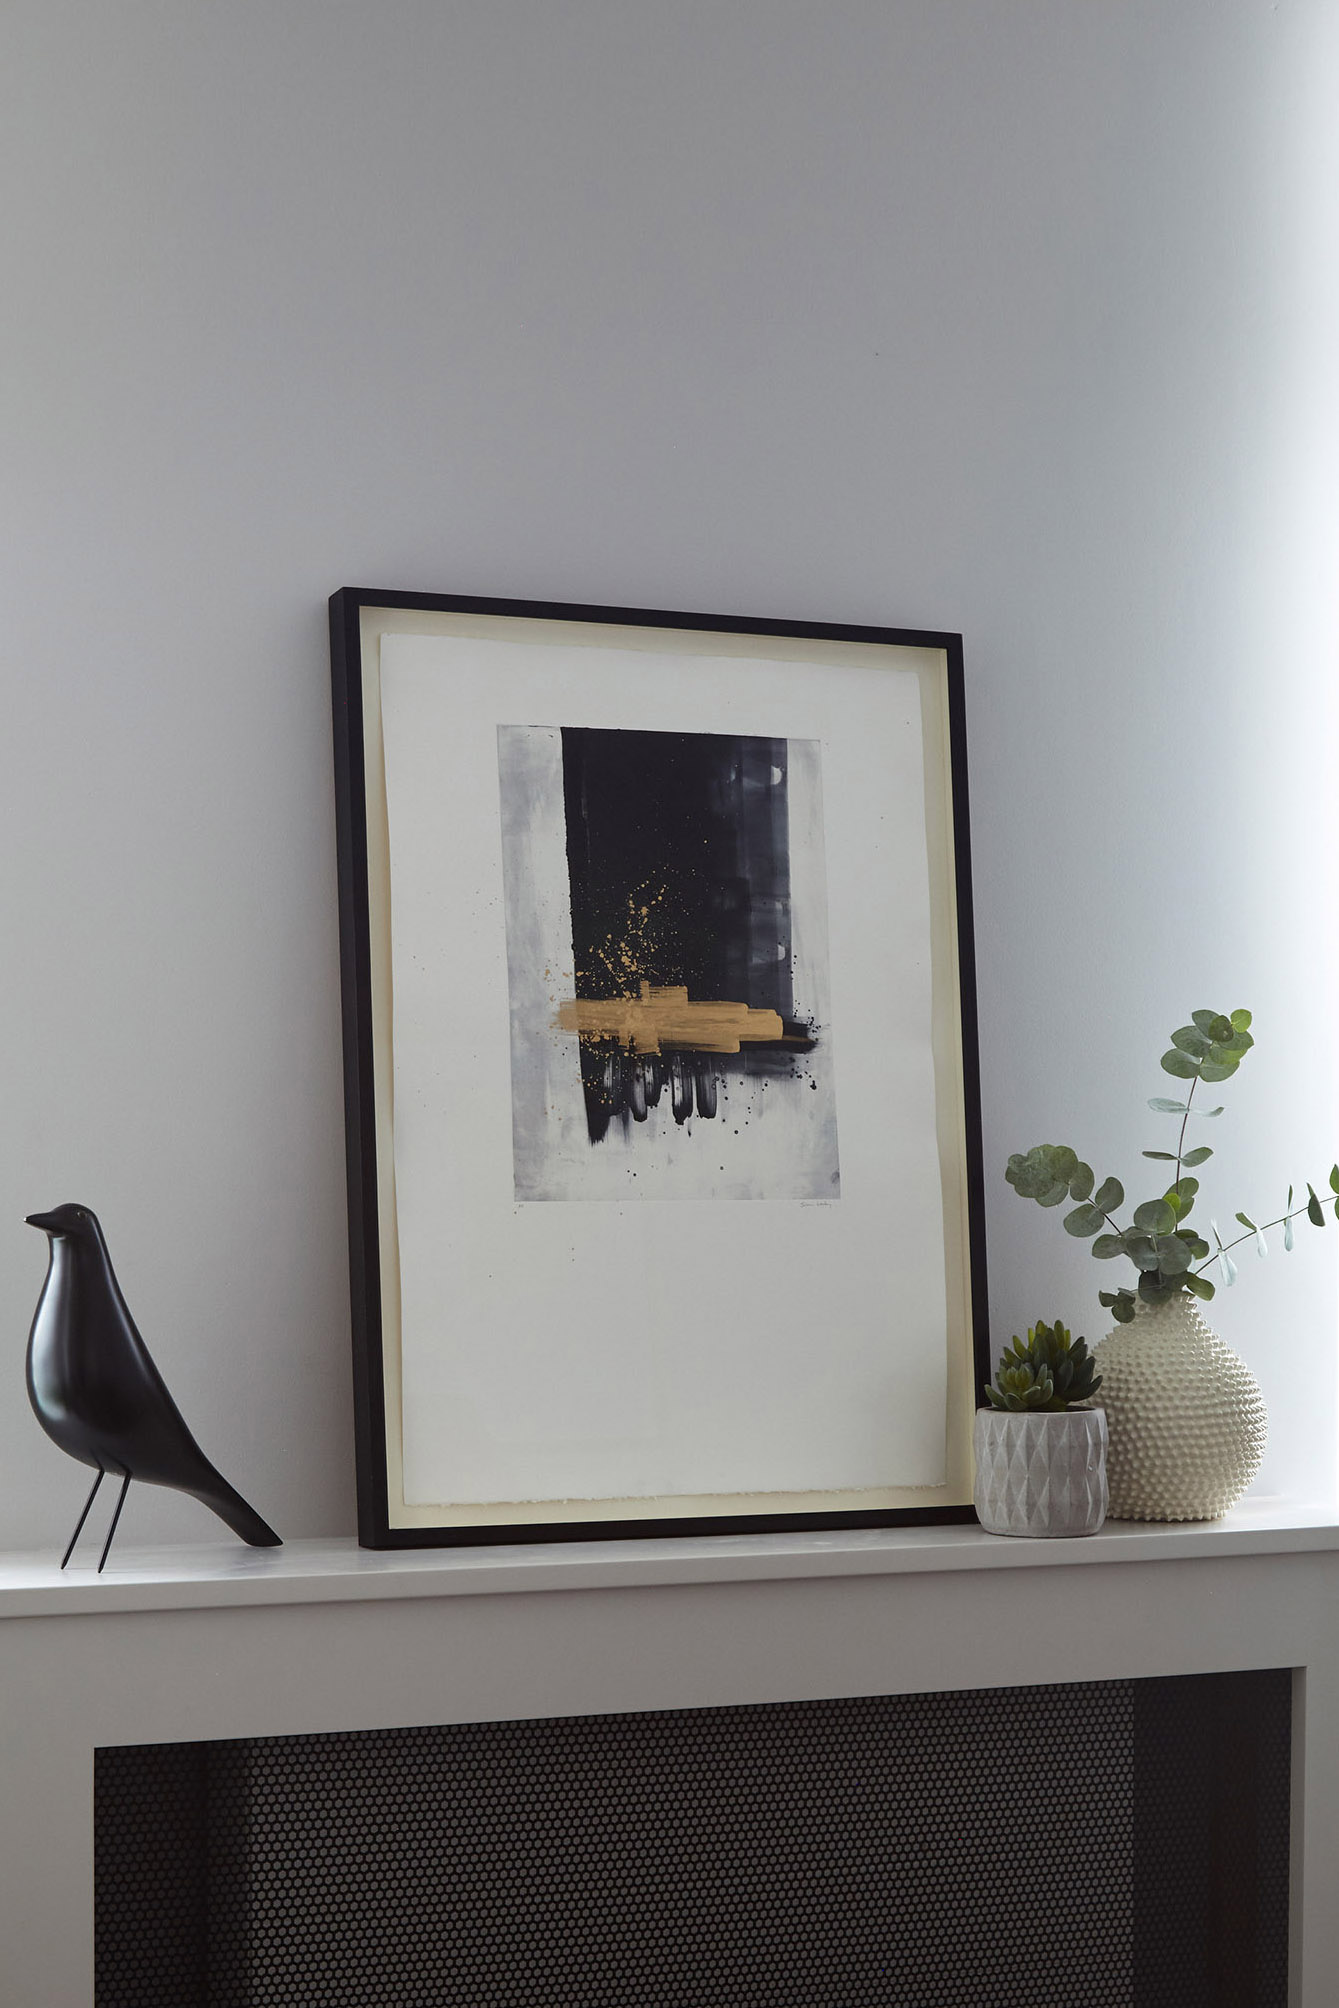 regents-park-london-apartment-interiors-design-anna-burles-fresh-cool-modern-mantelpiece-art-frames-crop